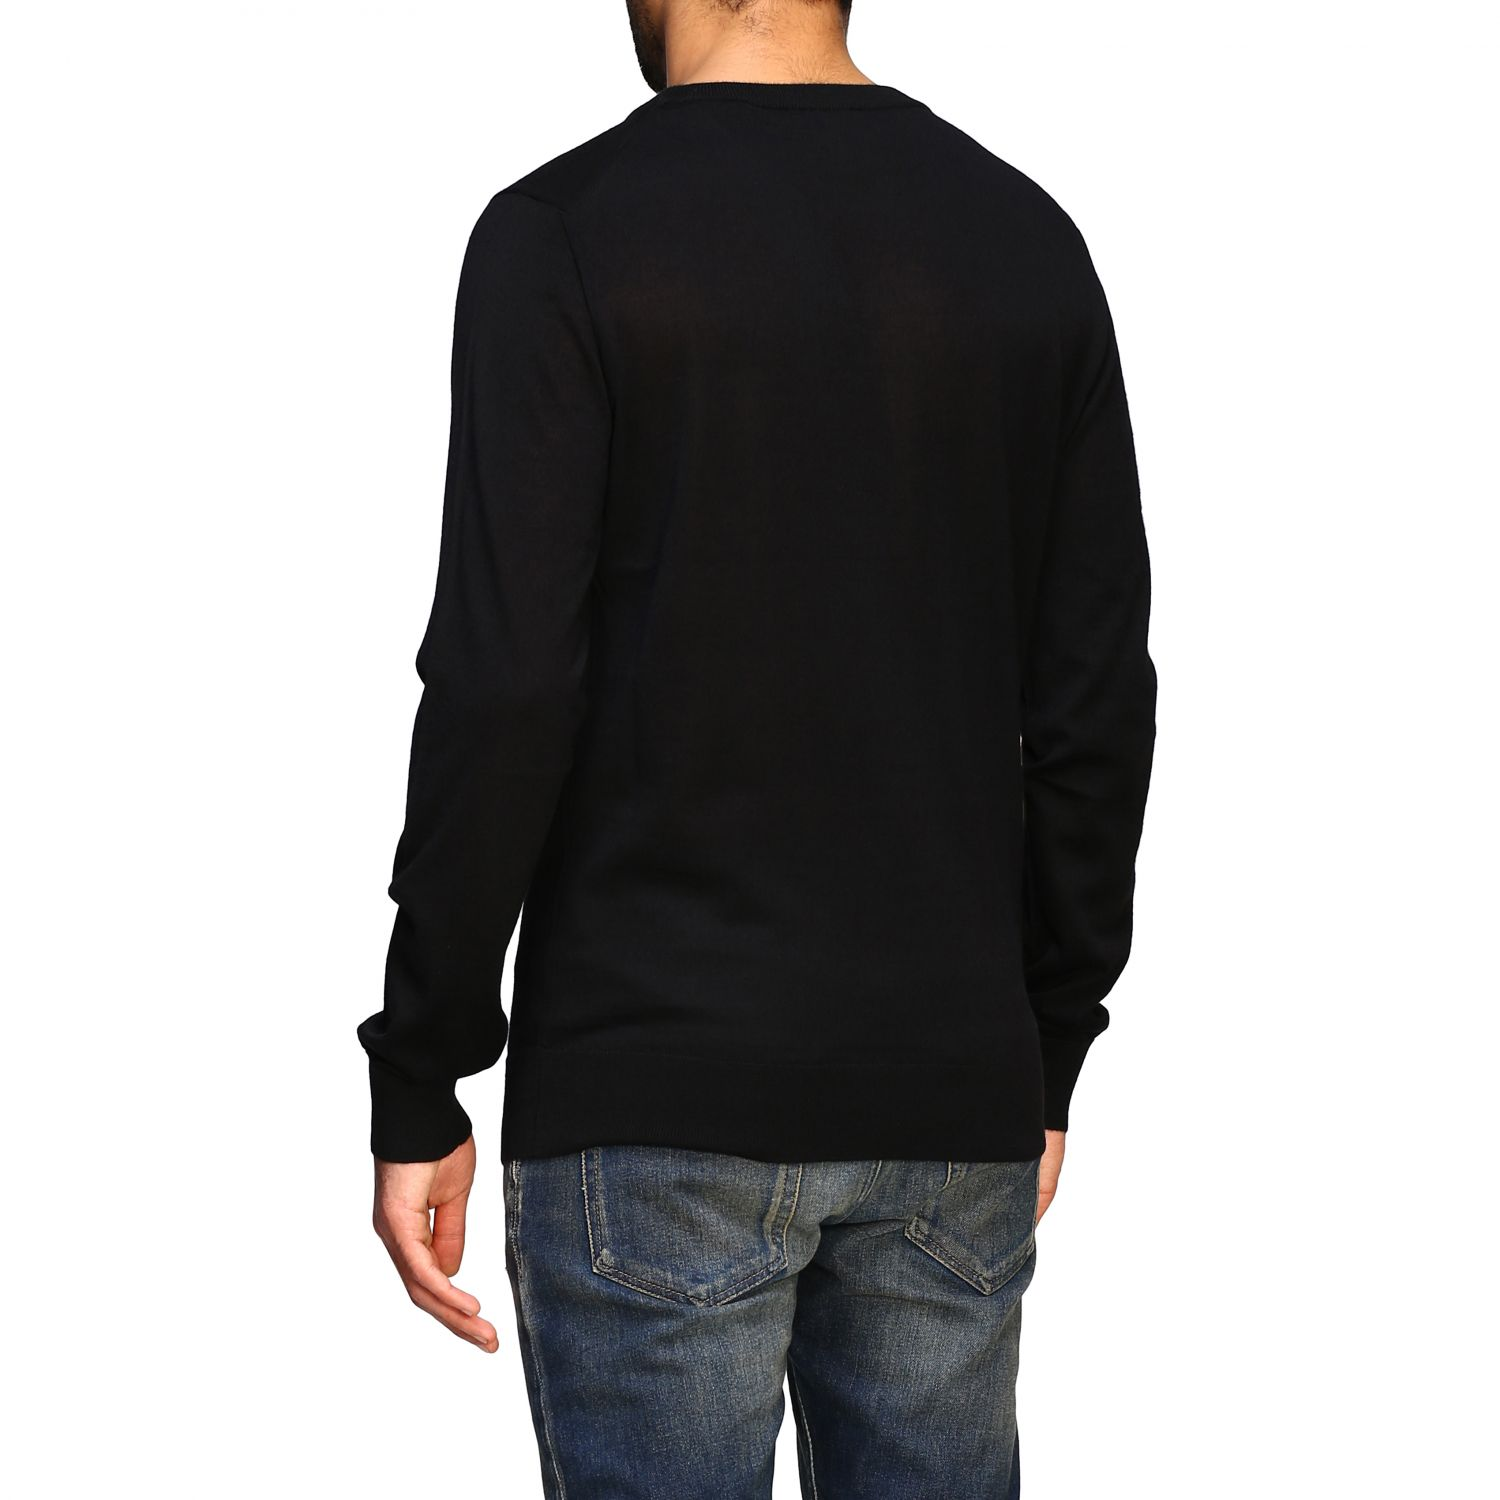 Sweater Balmain: Balmain cashmere crewneck sweater with logo black 3